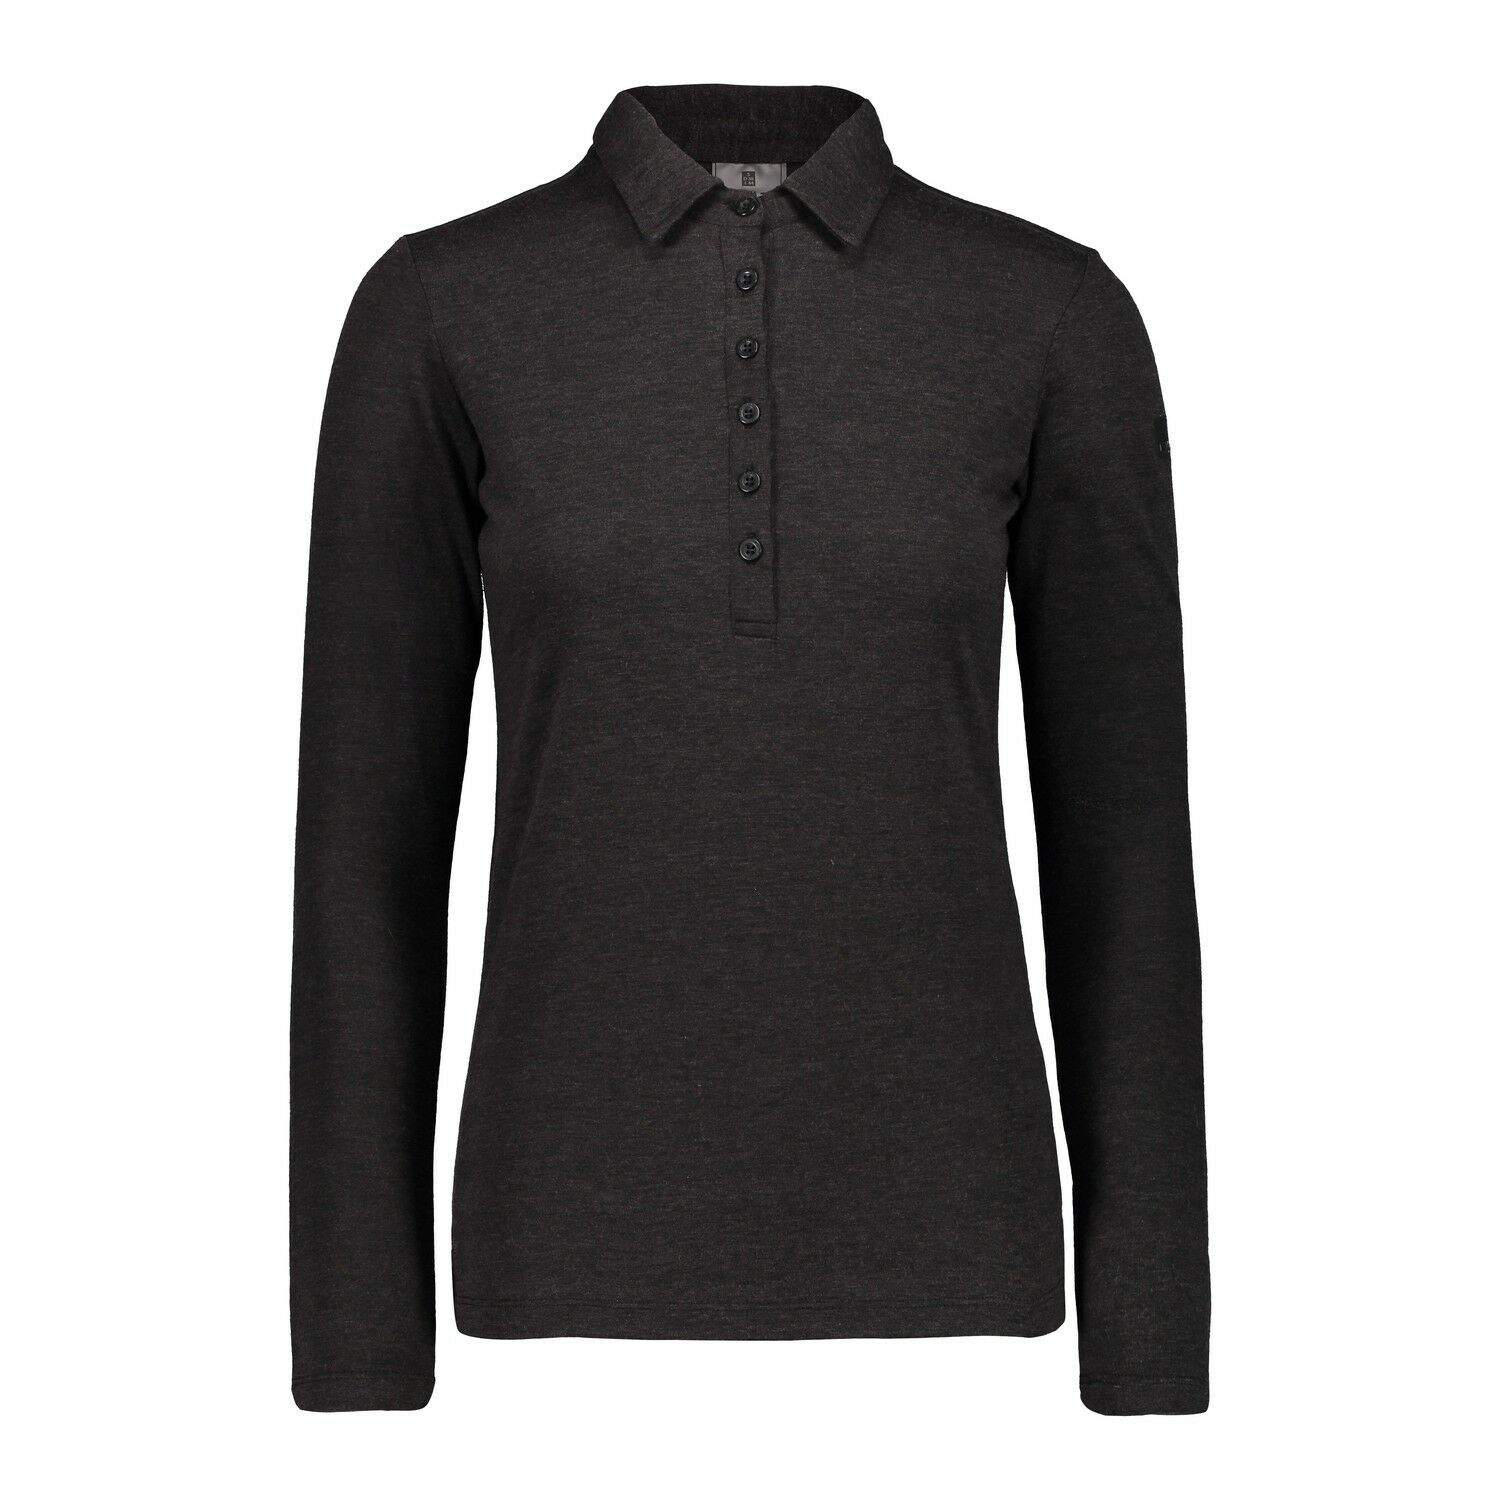 CMP Funktionsoberteil Shirt WOMAN POLO black atmungsaktiv wärmend